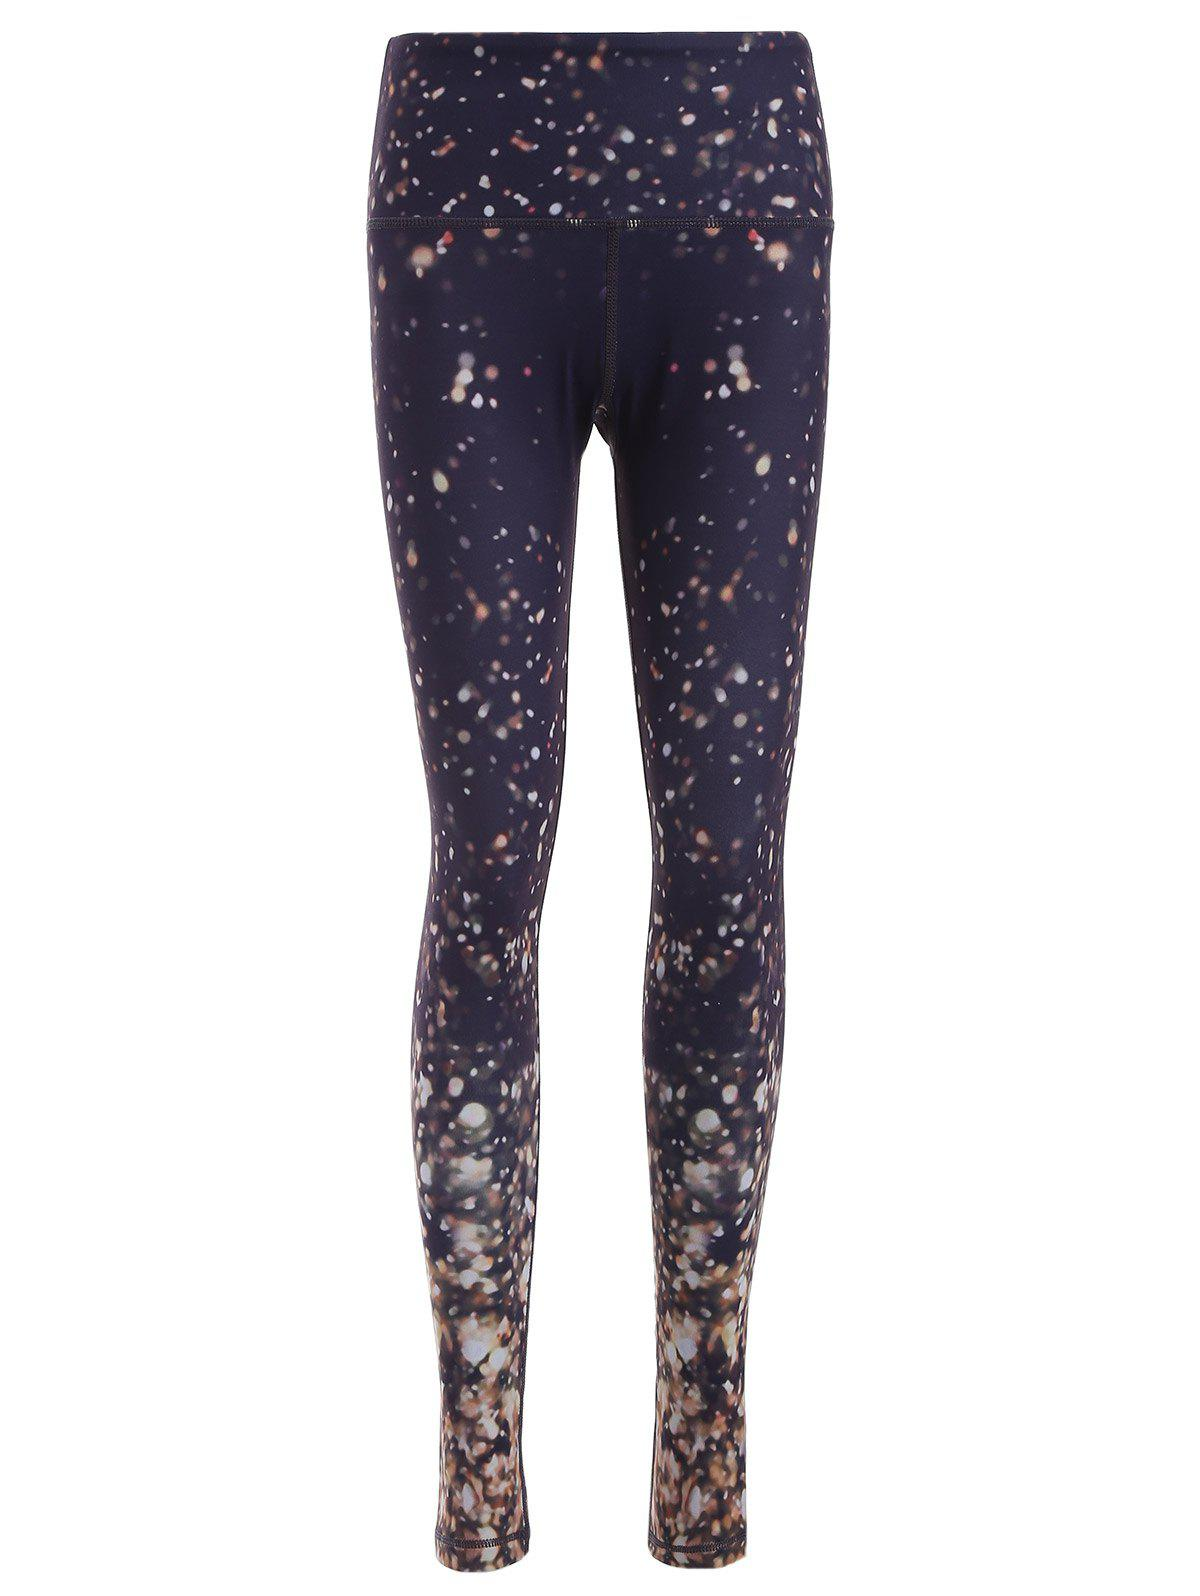 Galaxy Print Skinny Yoga Pants - COLORMIX M